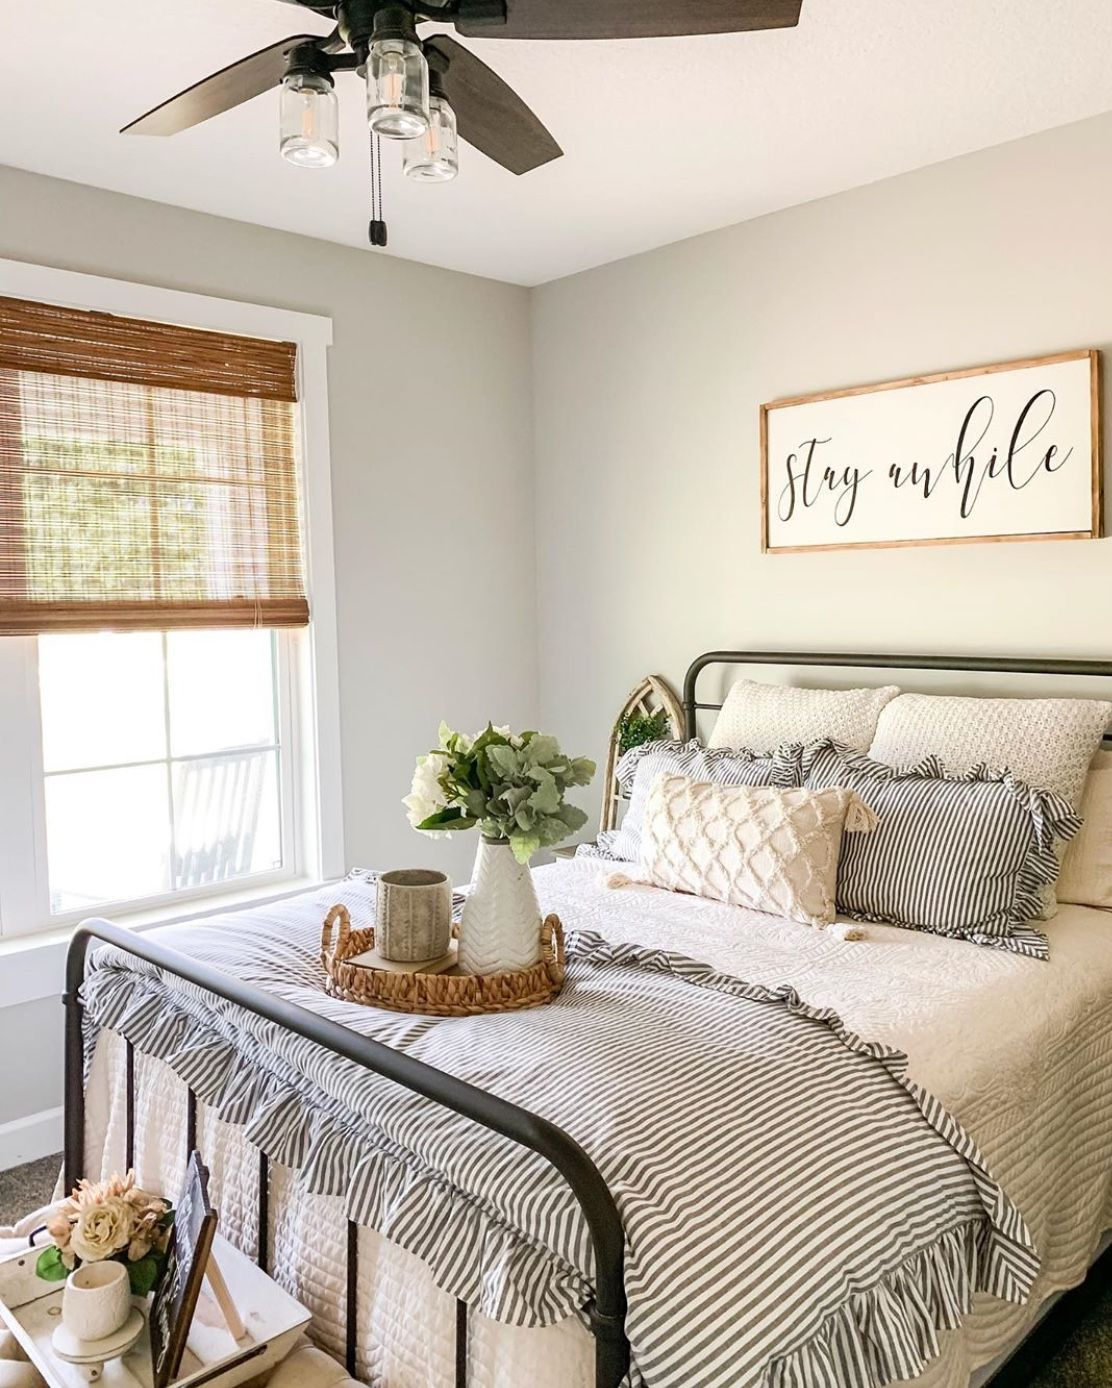 50 Cozy Farmhouse Master Bedroom Remodel Ideas: Pin By Becky Garling On Bedrooms